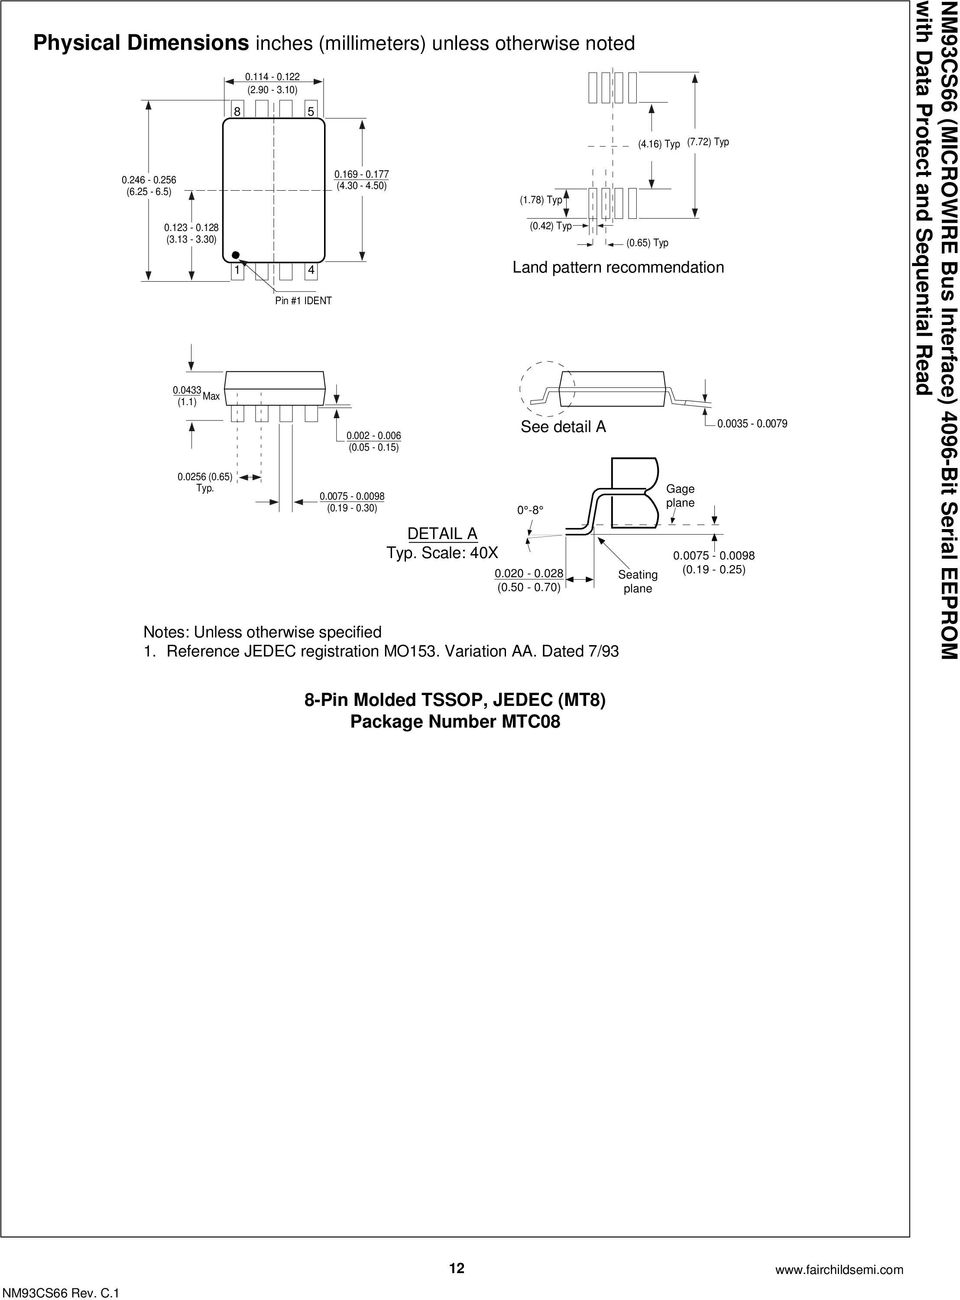 65) Typ Land pattern recommendation See detail A 0-8 0.020-0.028 (0.50-0.70) Notes: Unless otherwise specified 1. Reference JEDEC registration MO153. Variation AA.